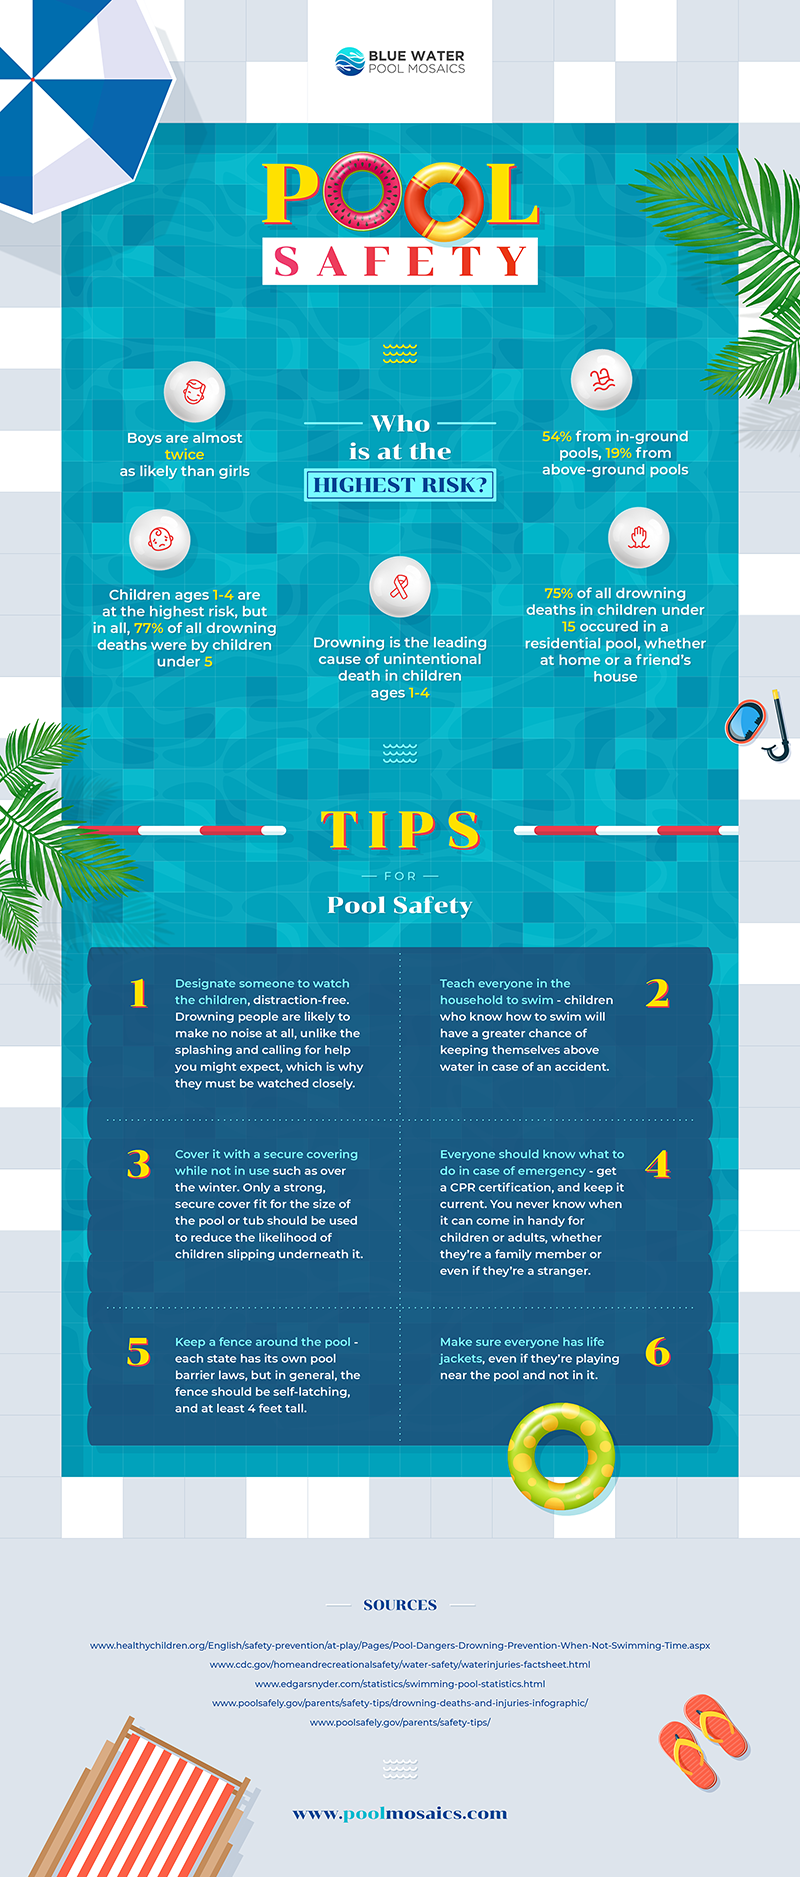 How to Ensure a Safe Pool for Summer Fun: 6 Important Safety Tips - Infographic